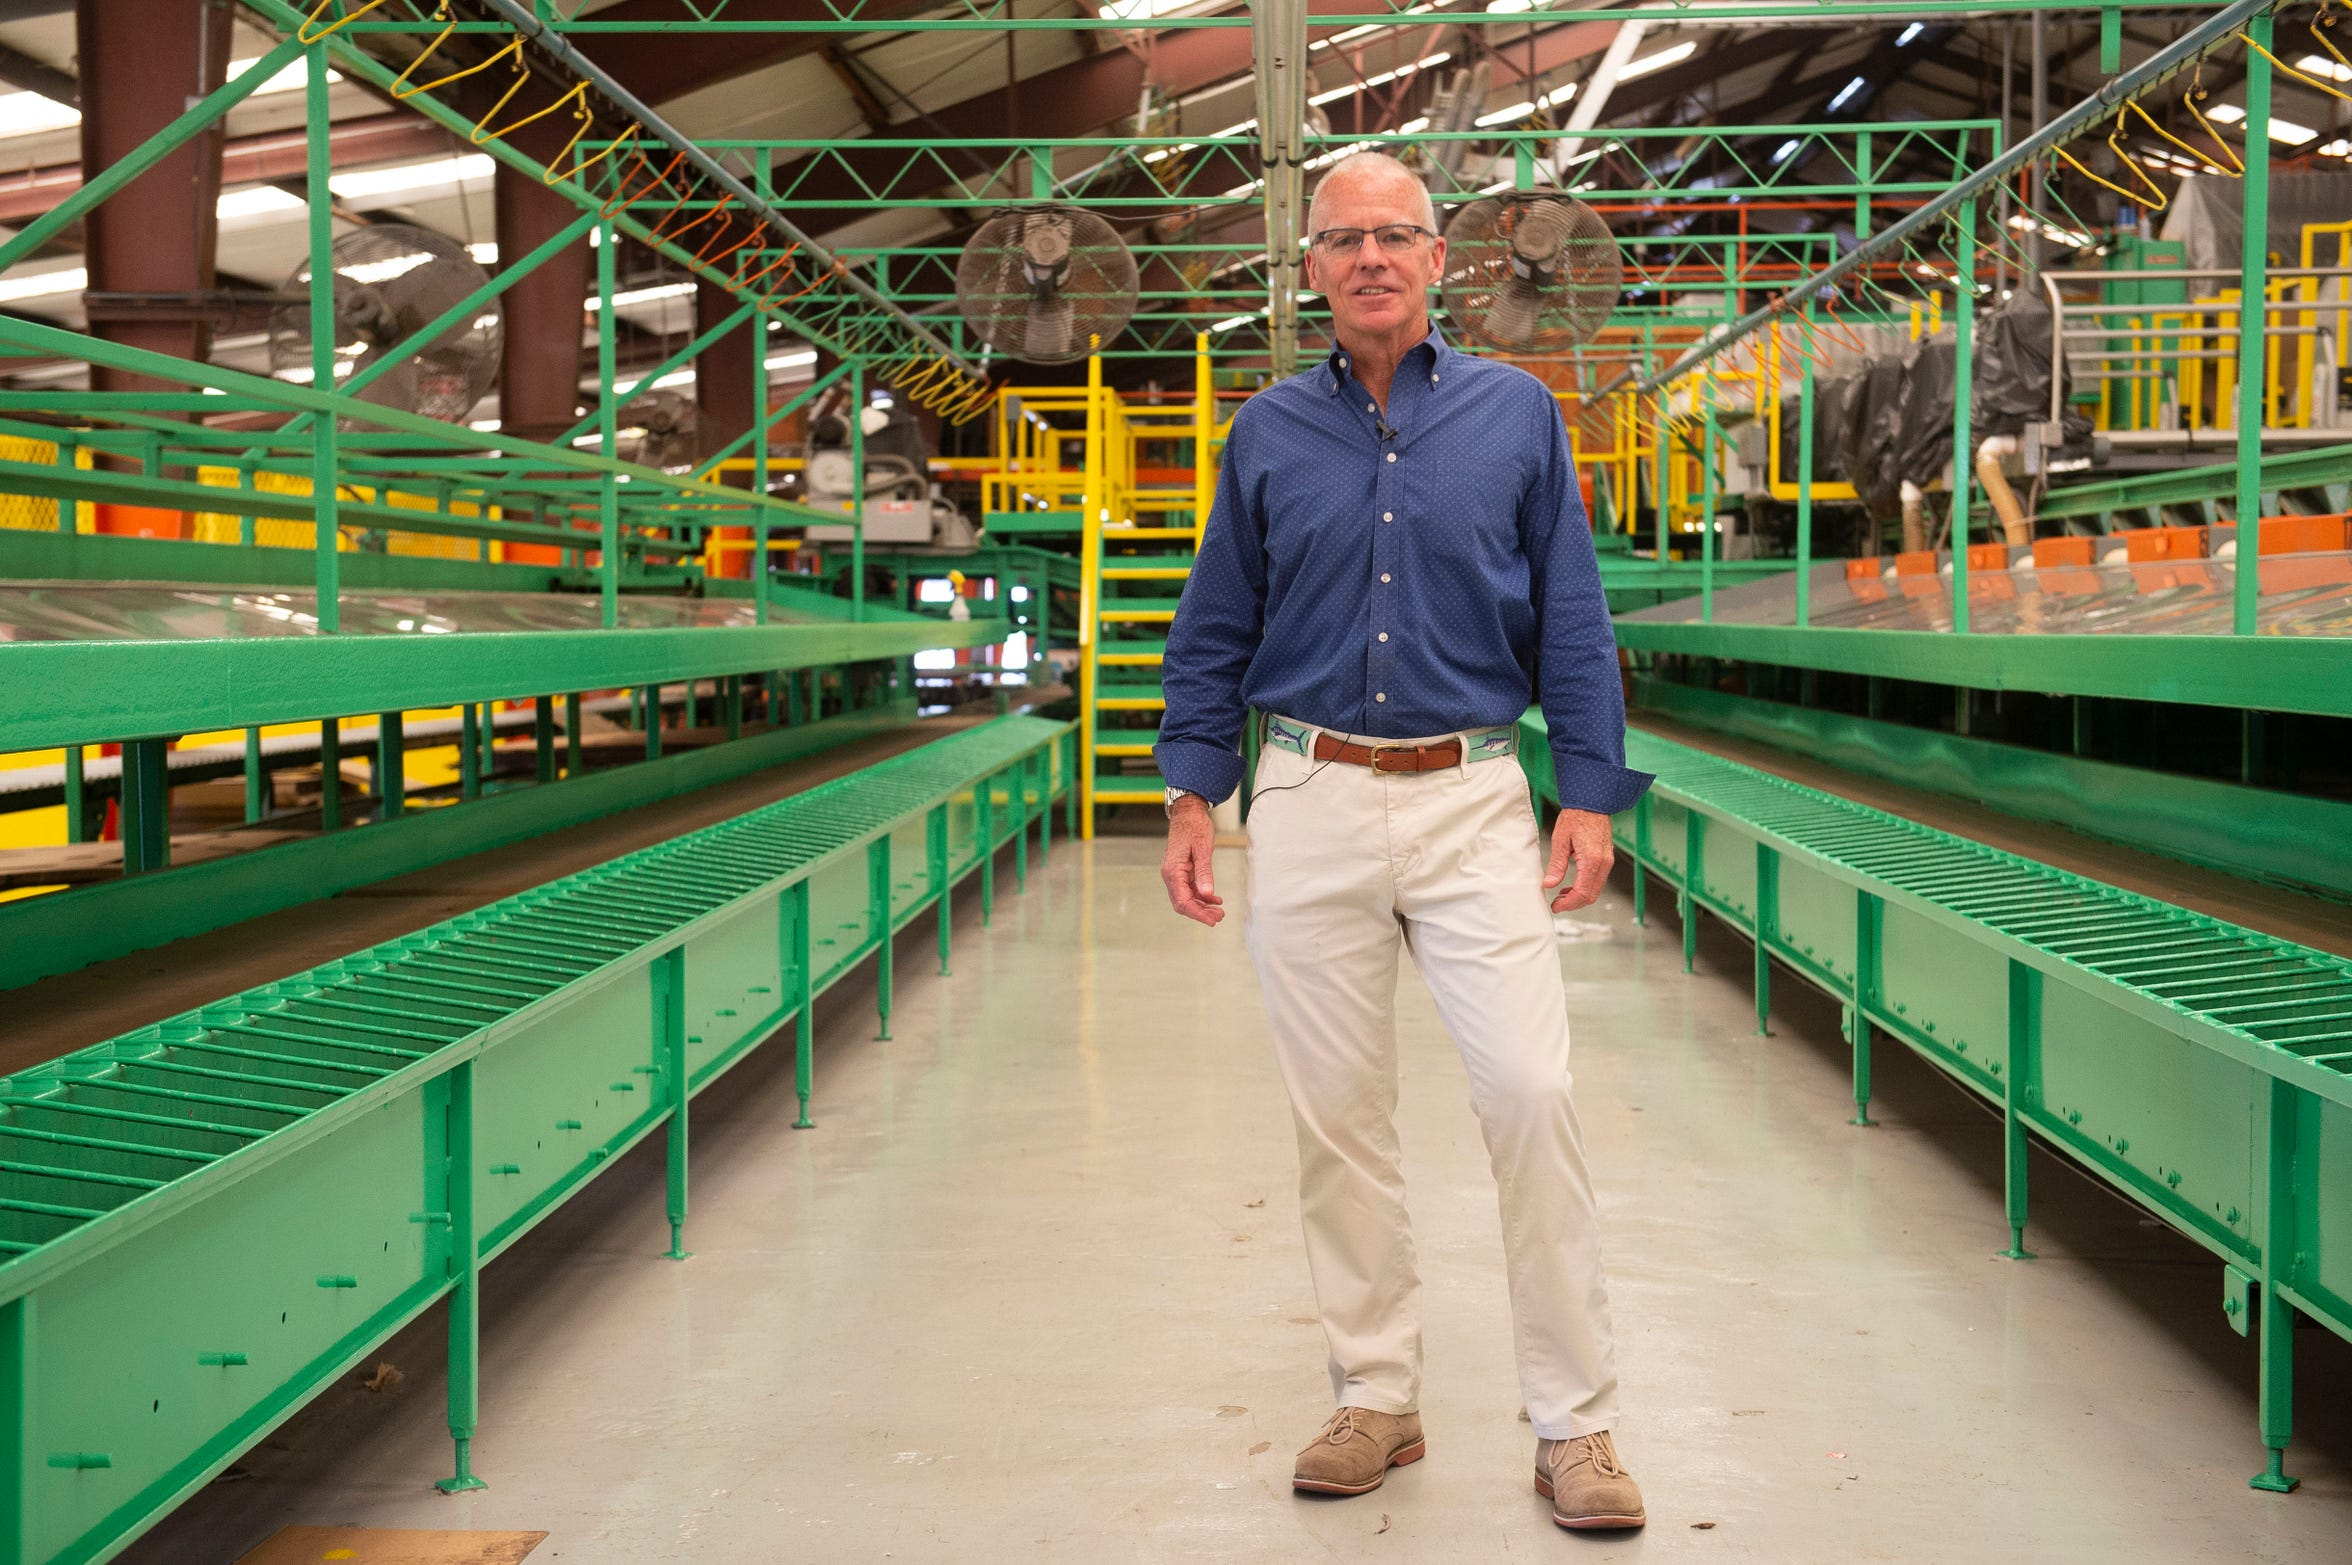 """For many years, grapefruit has been the only citrus packed at Riverfront Packing Company in Vero Beach, though faced with the challenges of citrus greening, president and CEO Dan Richey says, """"we're looking at diversifying,"""" with lemons and oranges since they seem to be tolerant to citrus greening. Since joining forces with Scott Citrus Management in 2001, the vertically integrated companies have had success together by adapting to a changing industry. """"Quit is not in my vocabulary. We're not going to quit. This industry will survive,"""" Richey said. """"We have a plan in place that I believe is sustainable."""""""